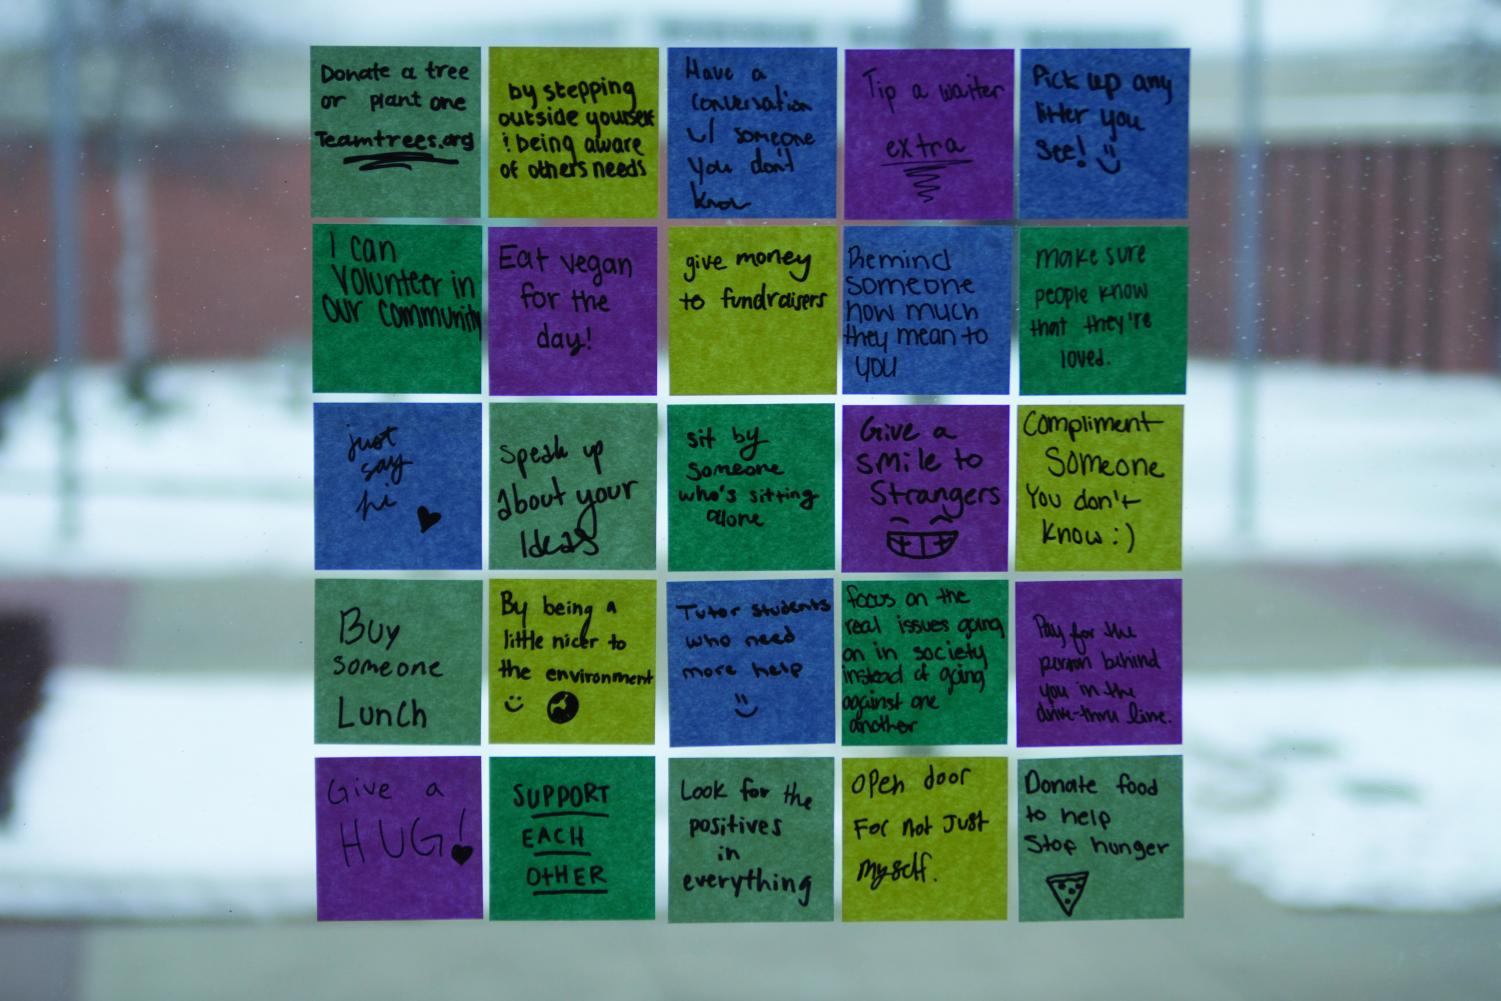 25 ideas from anonymous LHS students about how we can each make an impact on our world today.